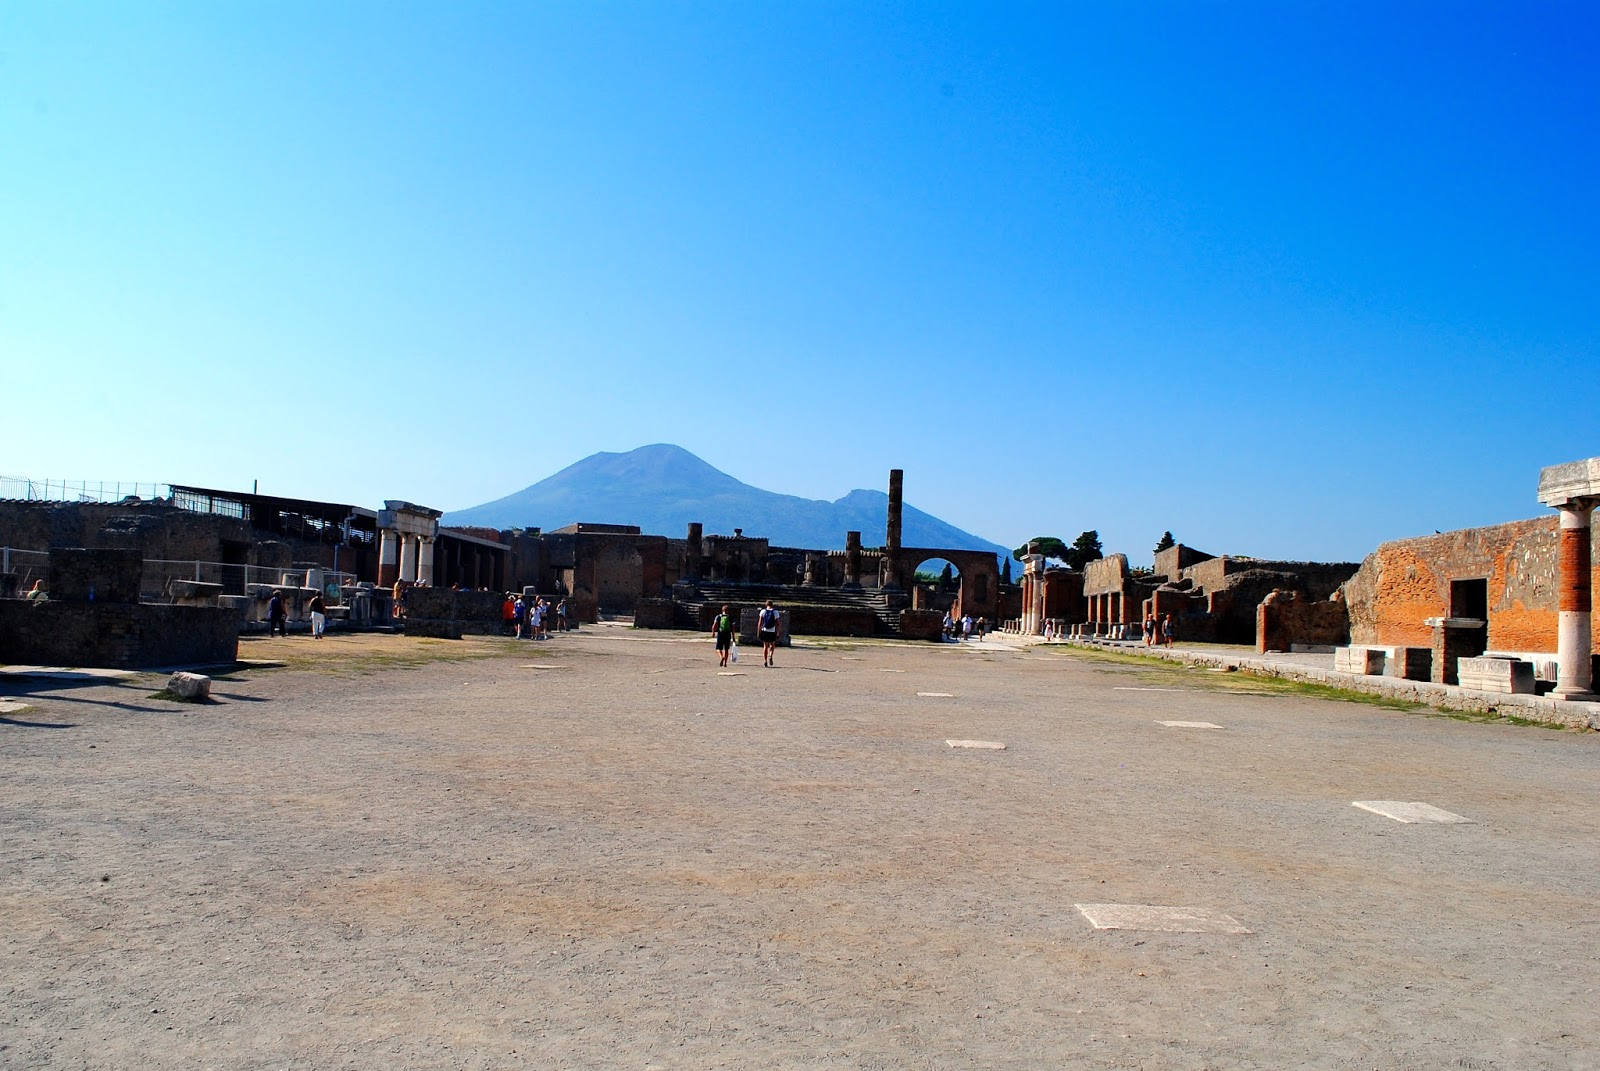 View of Mt Vesuvius from the Forum in Pompeii Italy